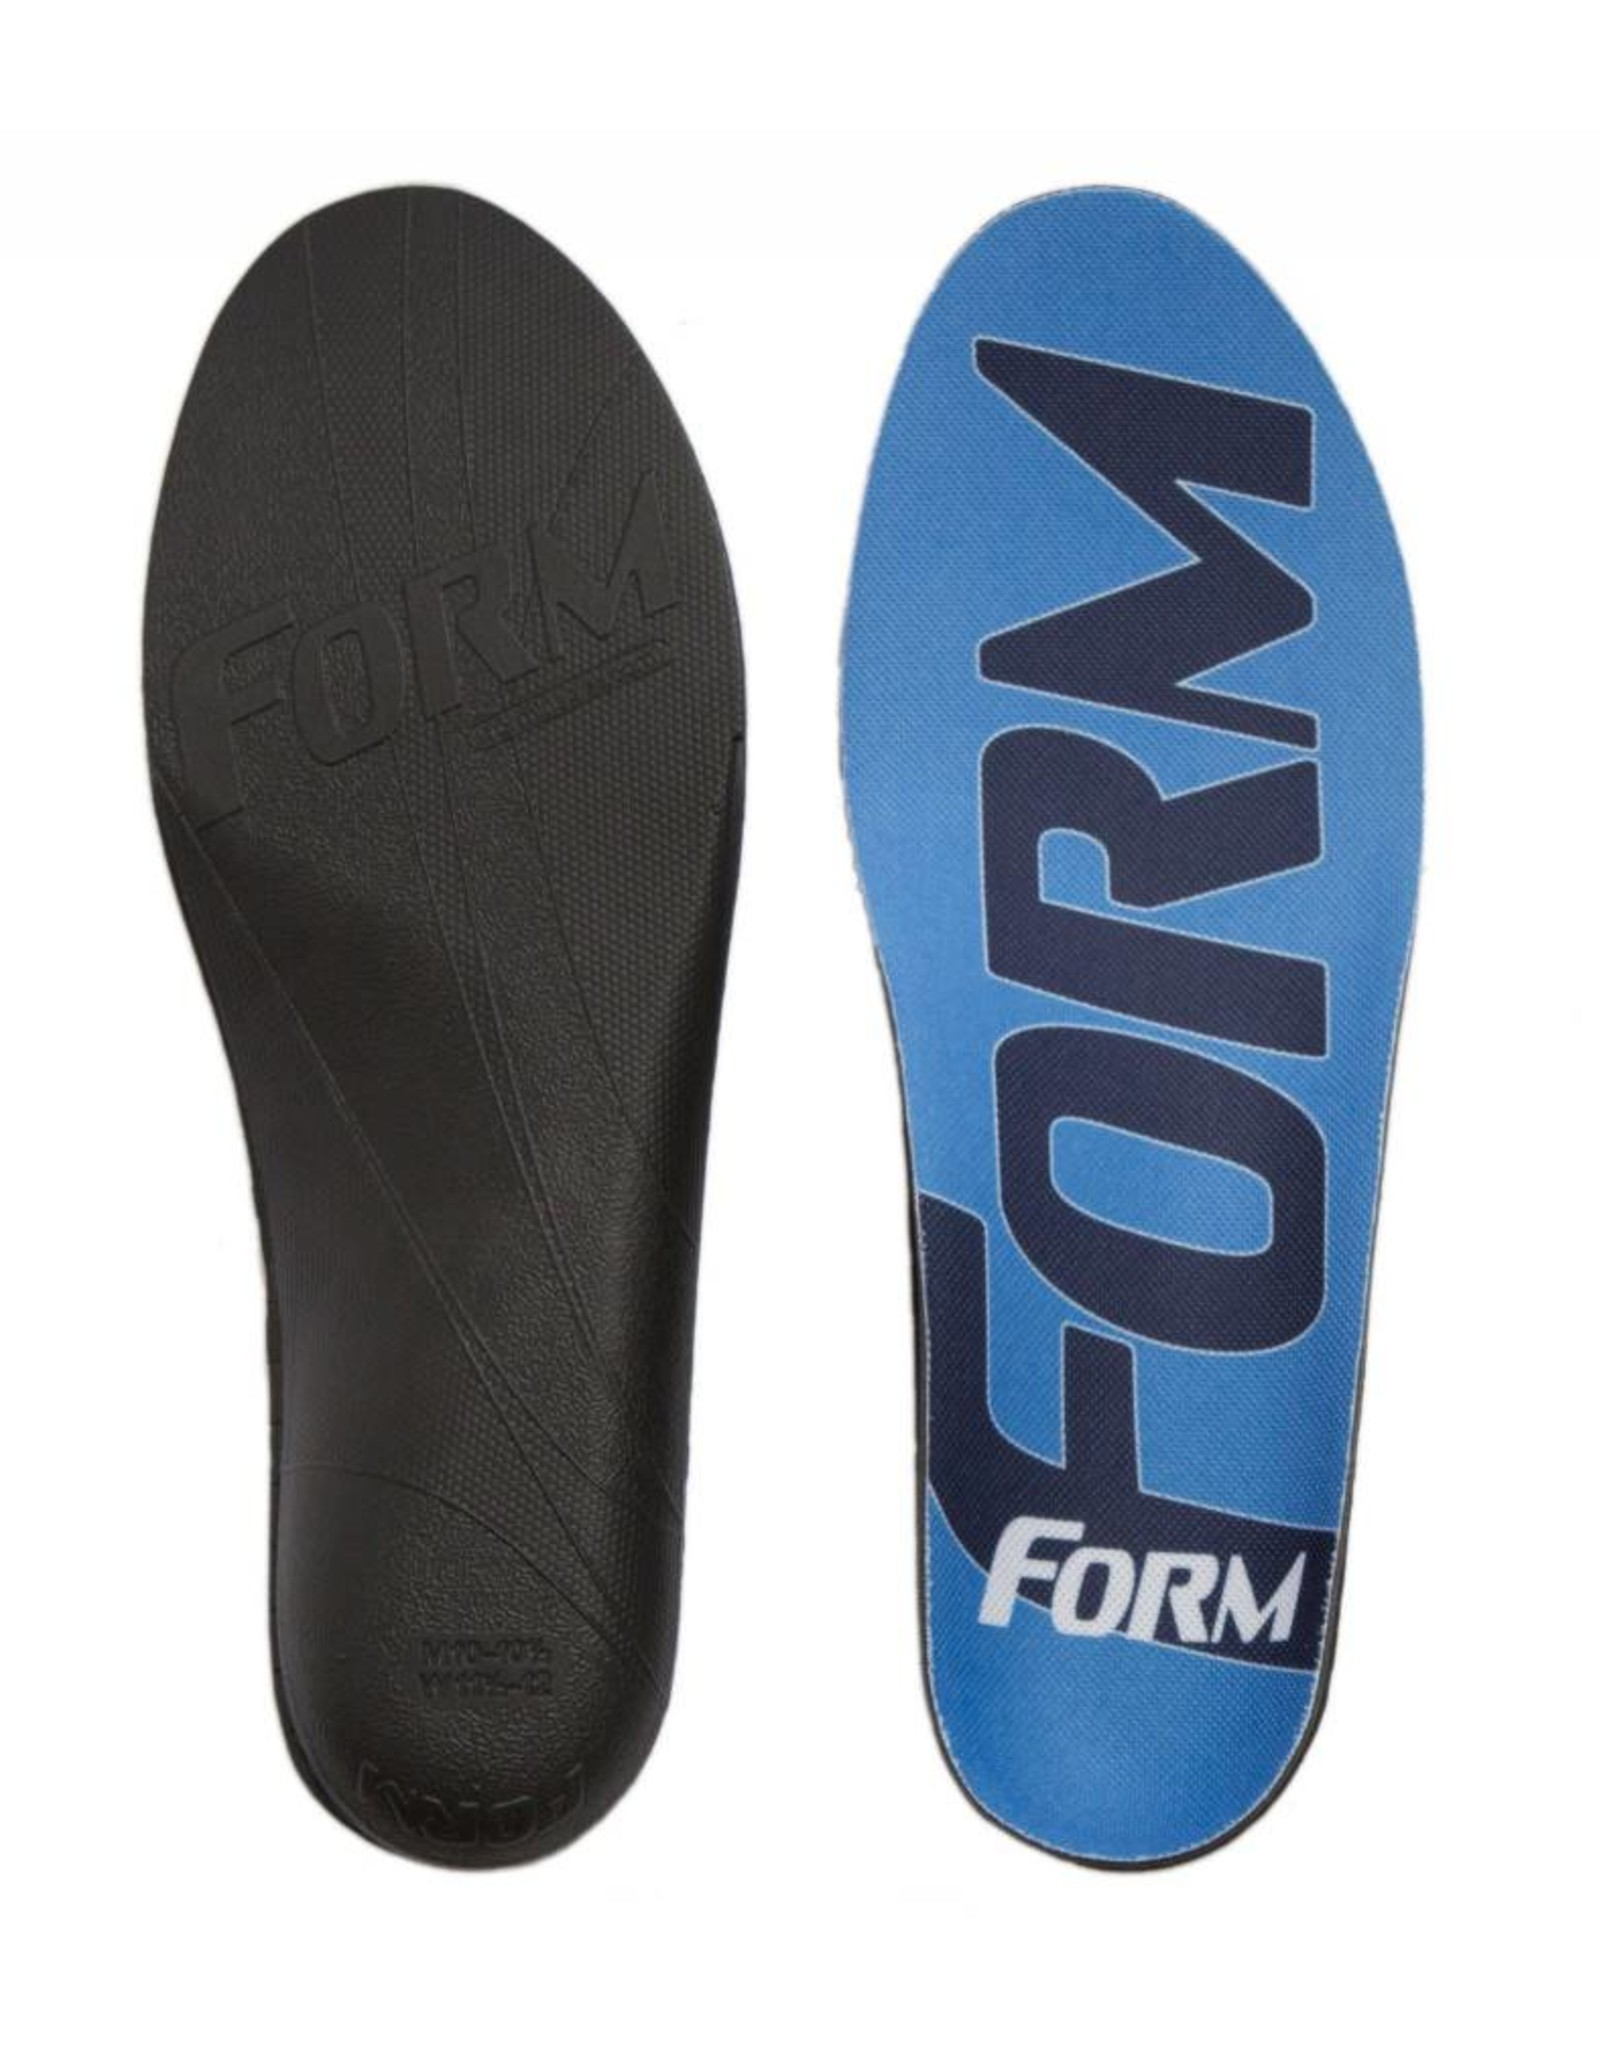 FORM MAXIMUM SUPPORT 3.0MM